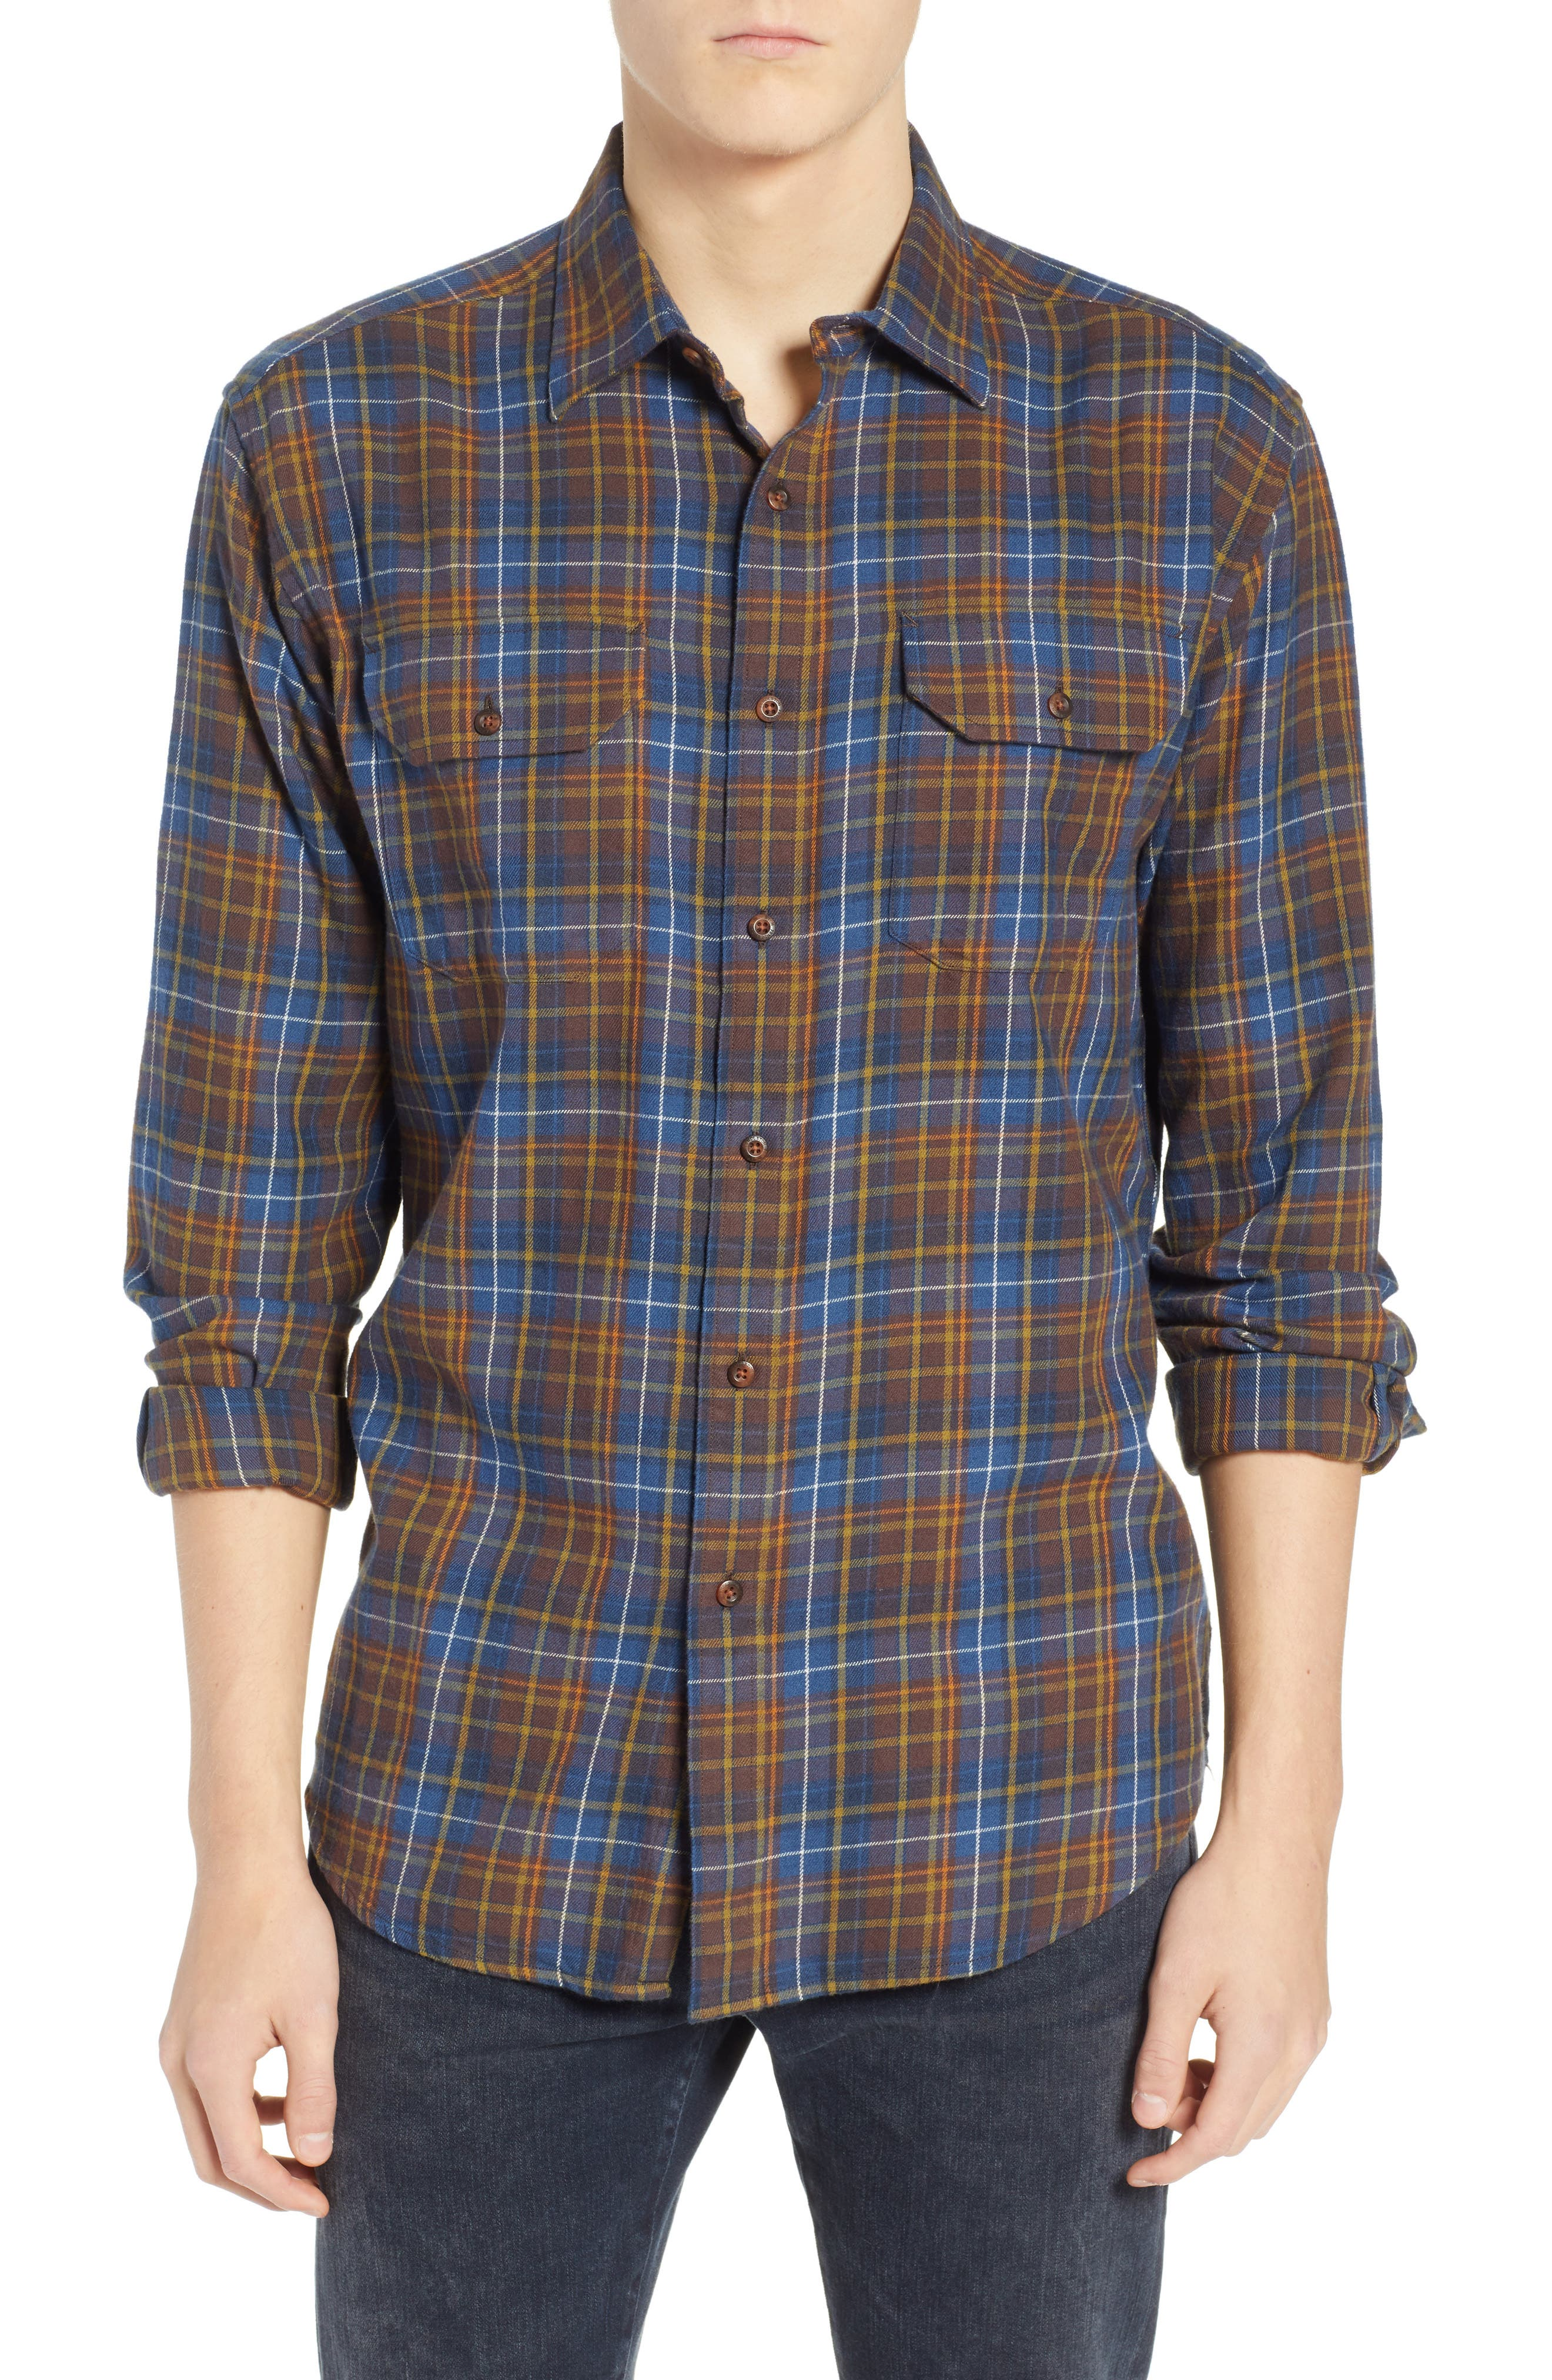 Bridger Plaid Twill Shirt,                             Main thumbnail 1, color,                             BLUE/ BROWN/ GREEN PLAID